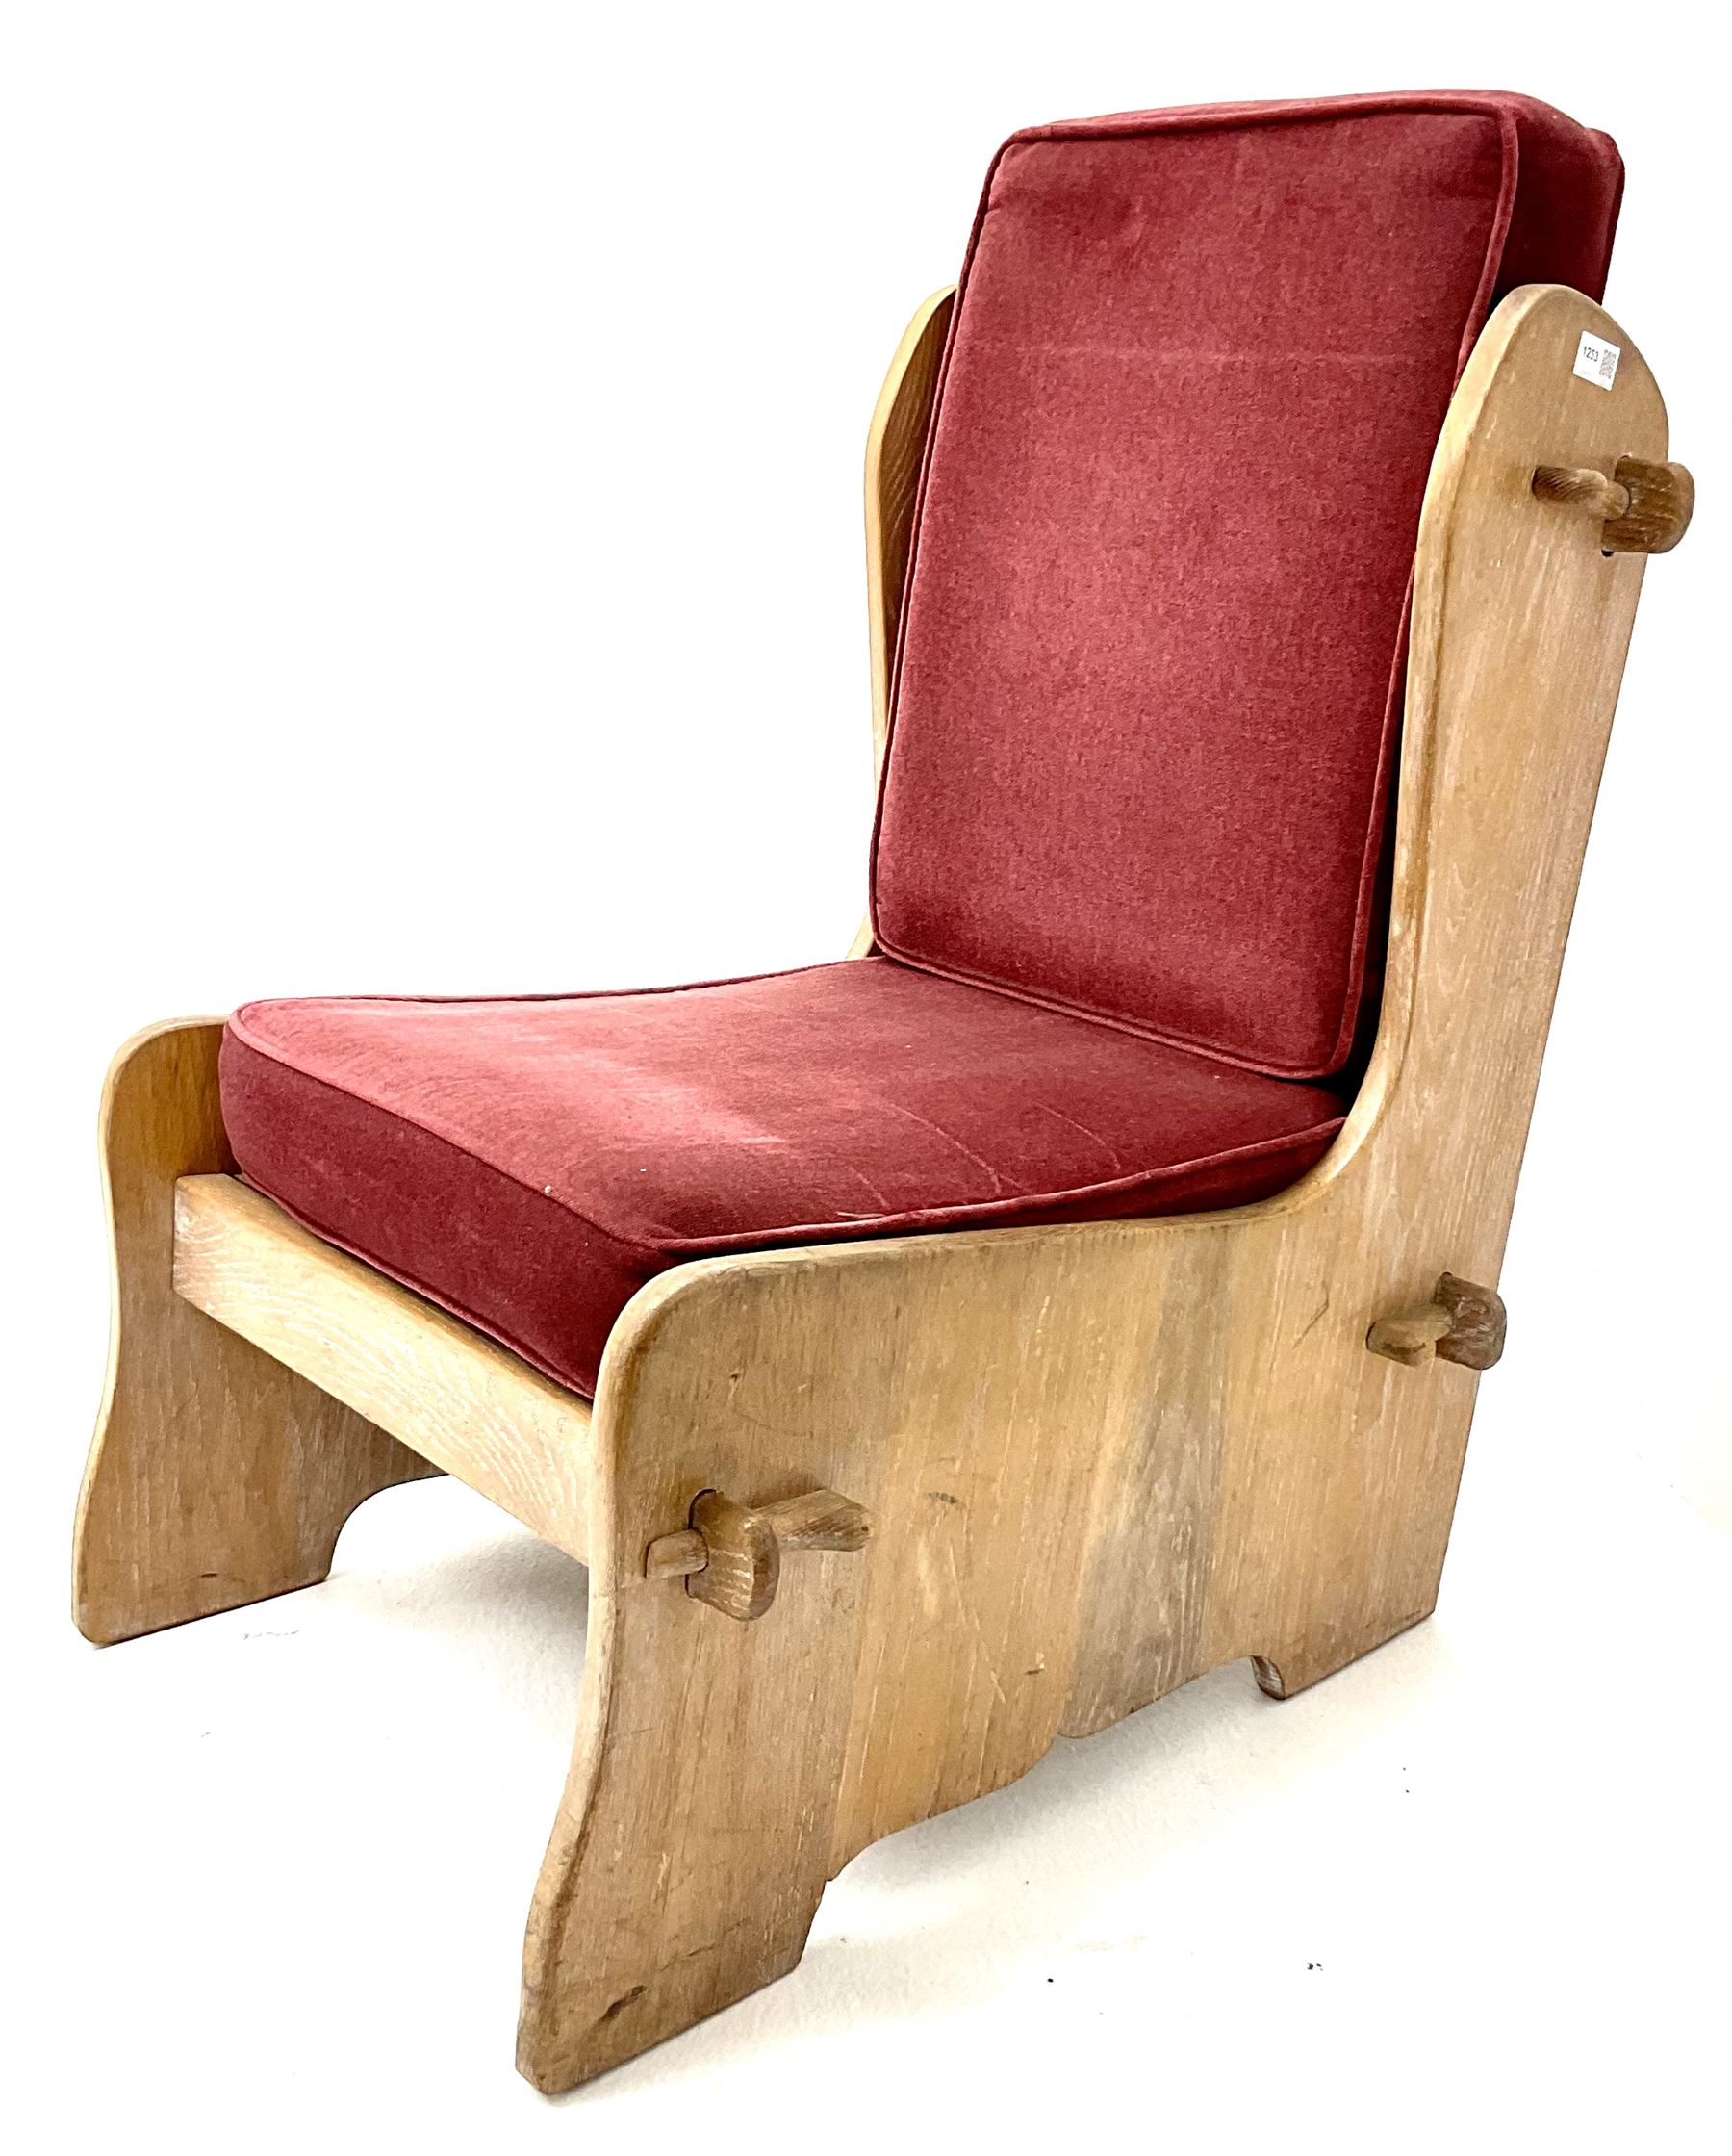 20th century oak chair - Image 2 of 2